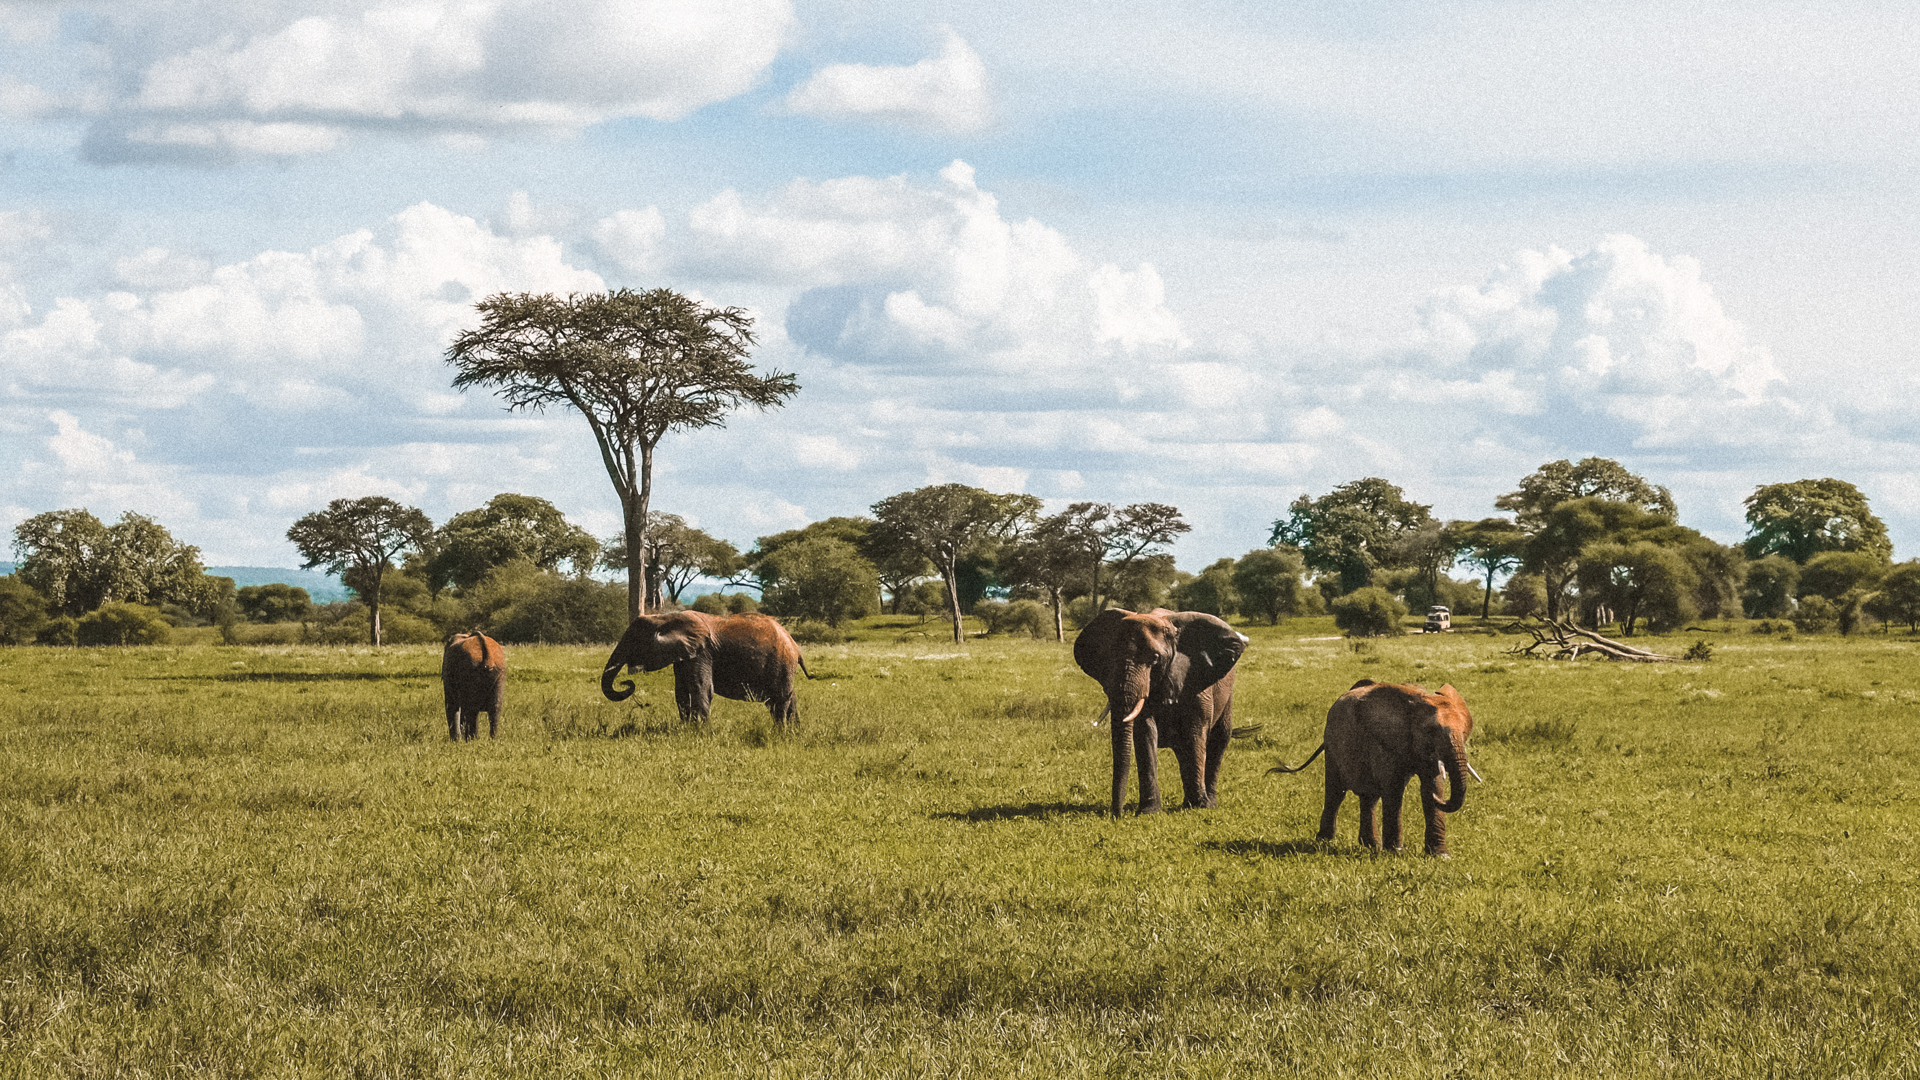 Mommas with young calf elephants in the Serengeti National Park, Tanzania